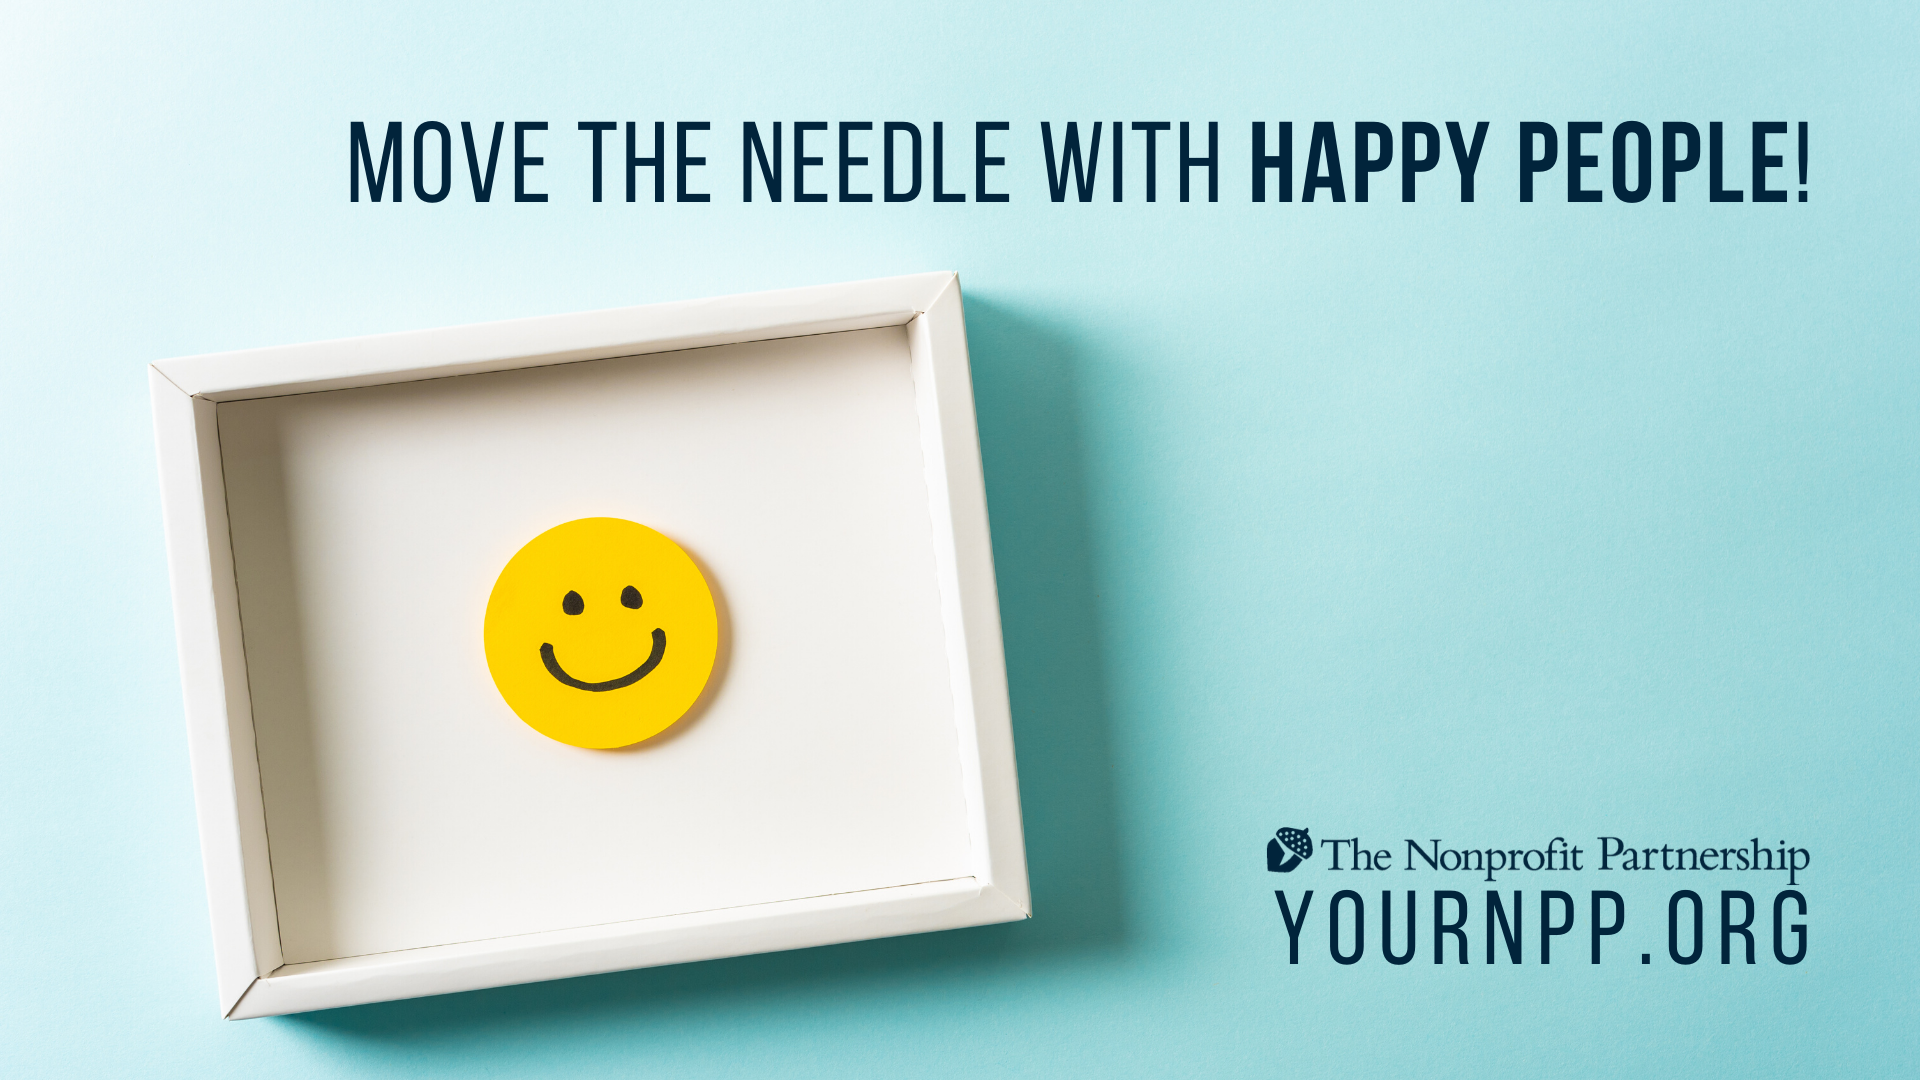 Move the Needle with Happy People!